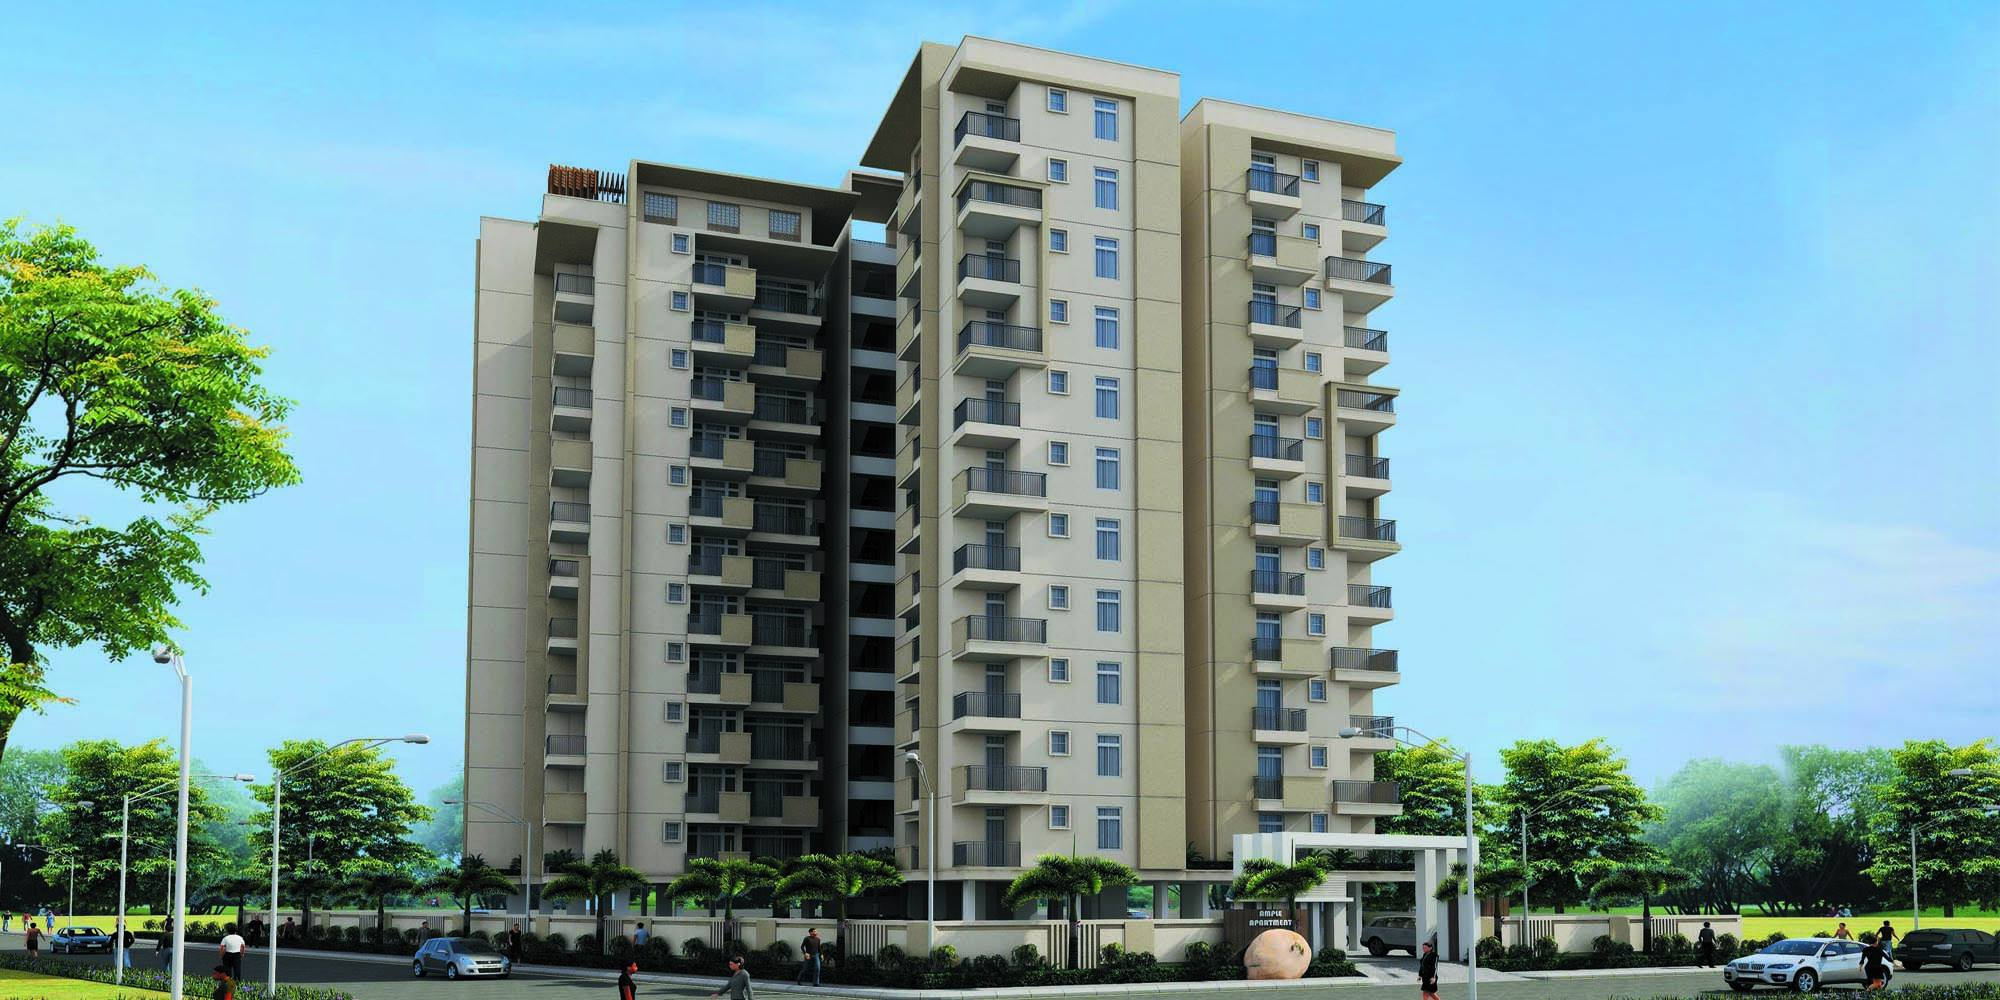 2 Bhk flats for sale in muhana road jaipur